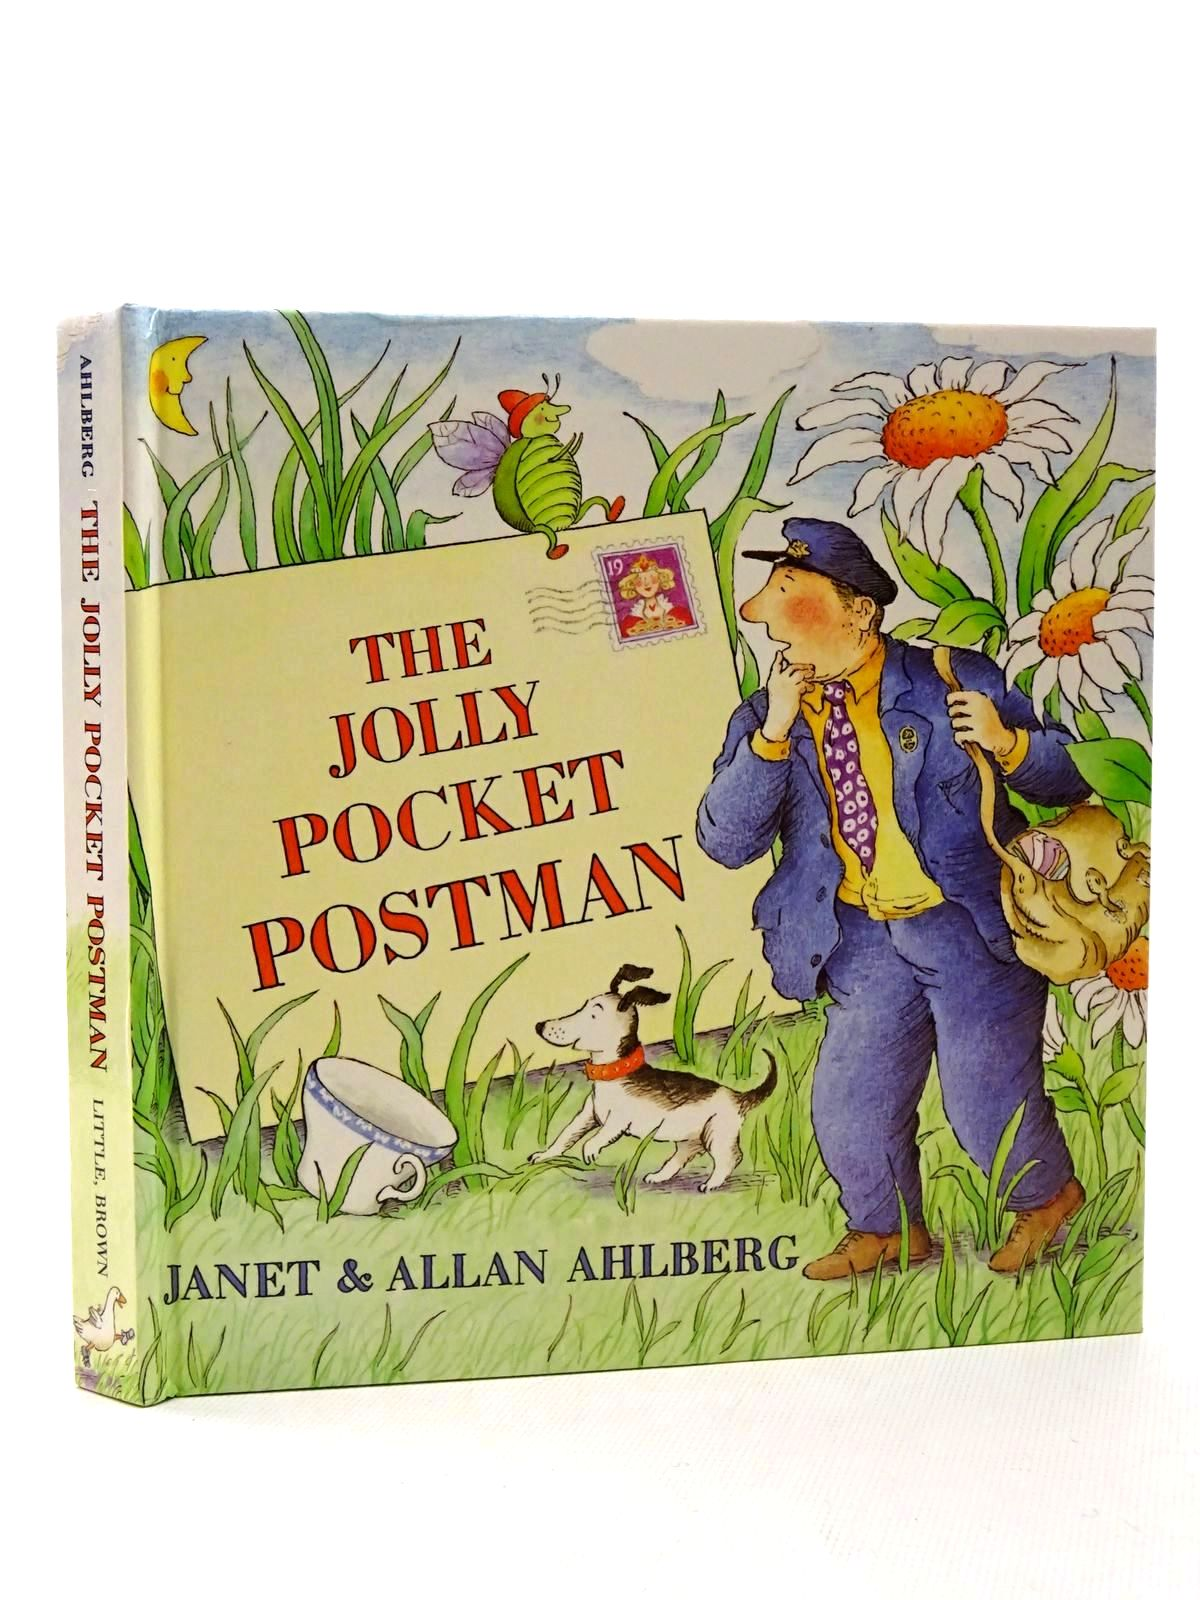 Photo of THE JOLLY POCKET POSTMAN written by Ahlberg, Allan illustrated by Ahlberg, Janet published by Little, Brown (STOCK CODE: 2124373)  for sale by Stella & Rose's Books